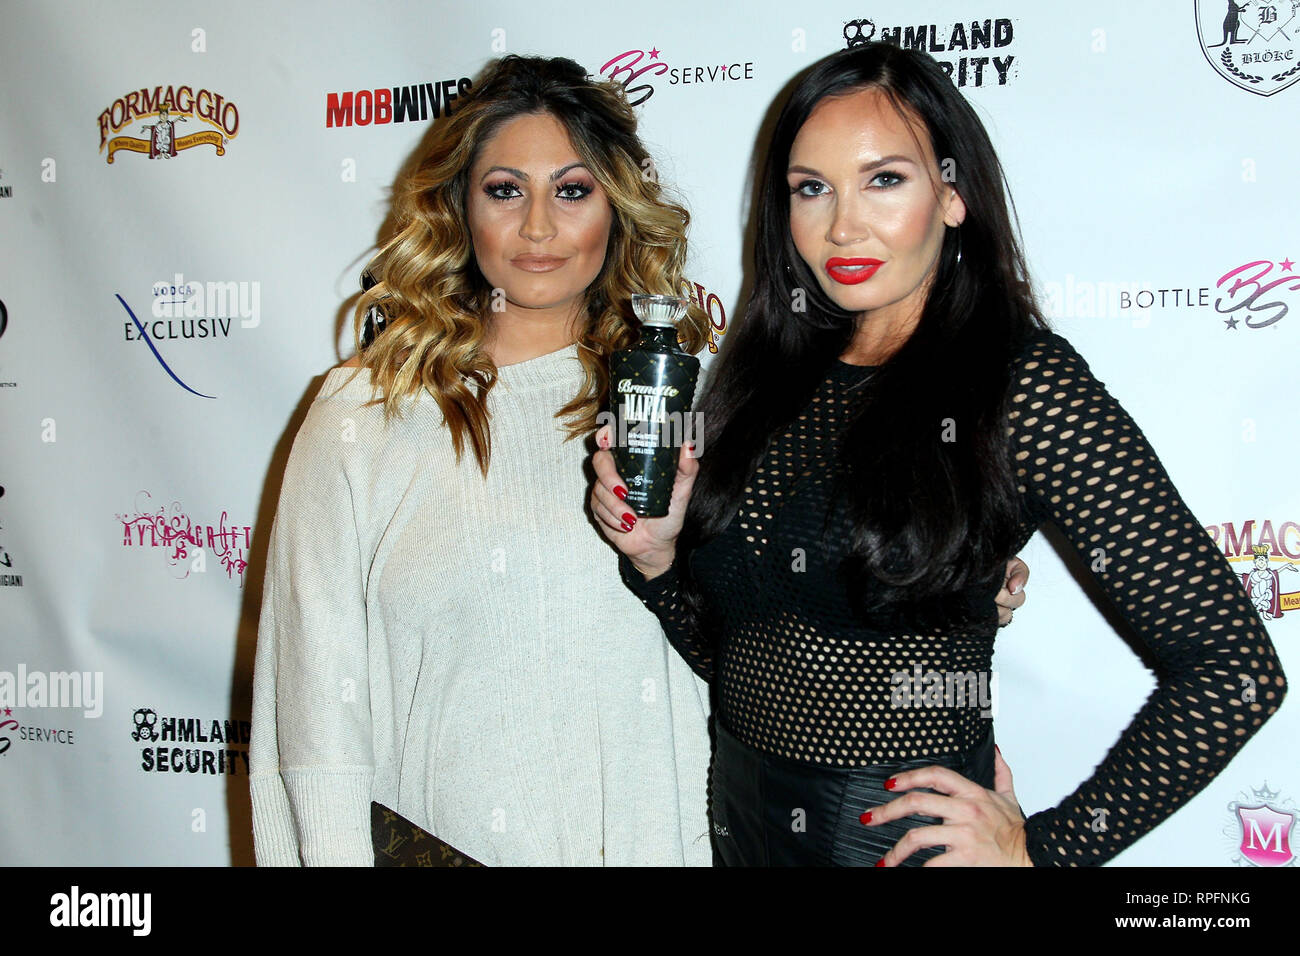 Tracy Dimarco High Resolution Stock Photography and Images - Alamy